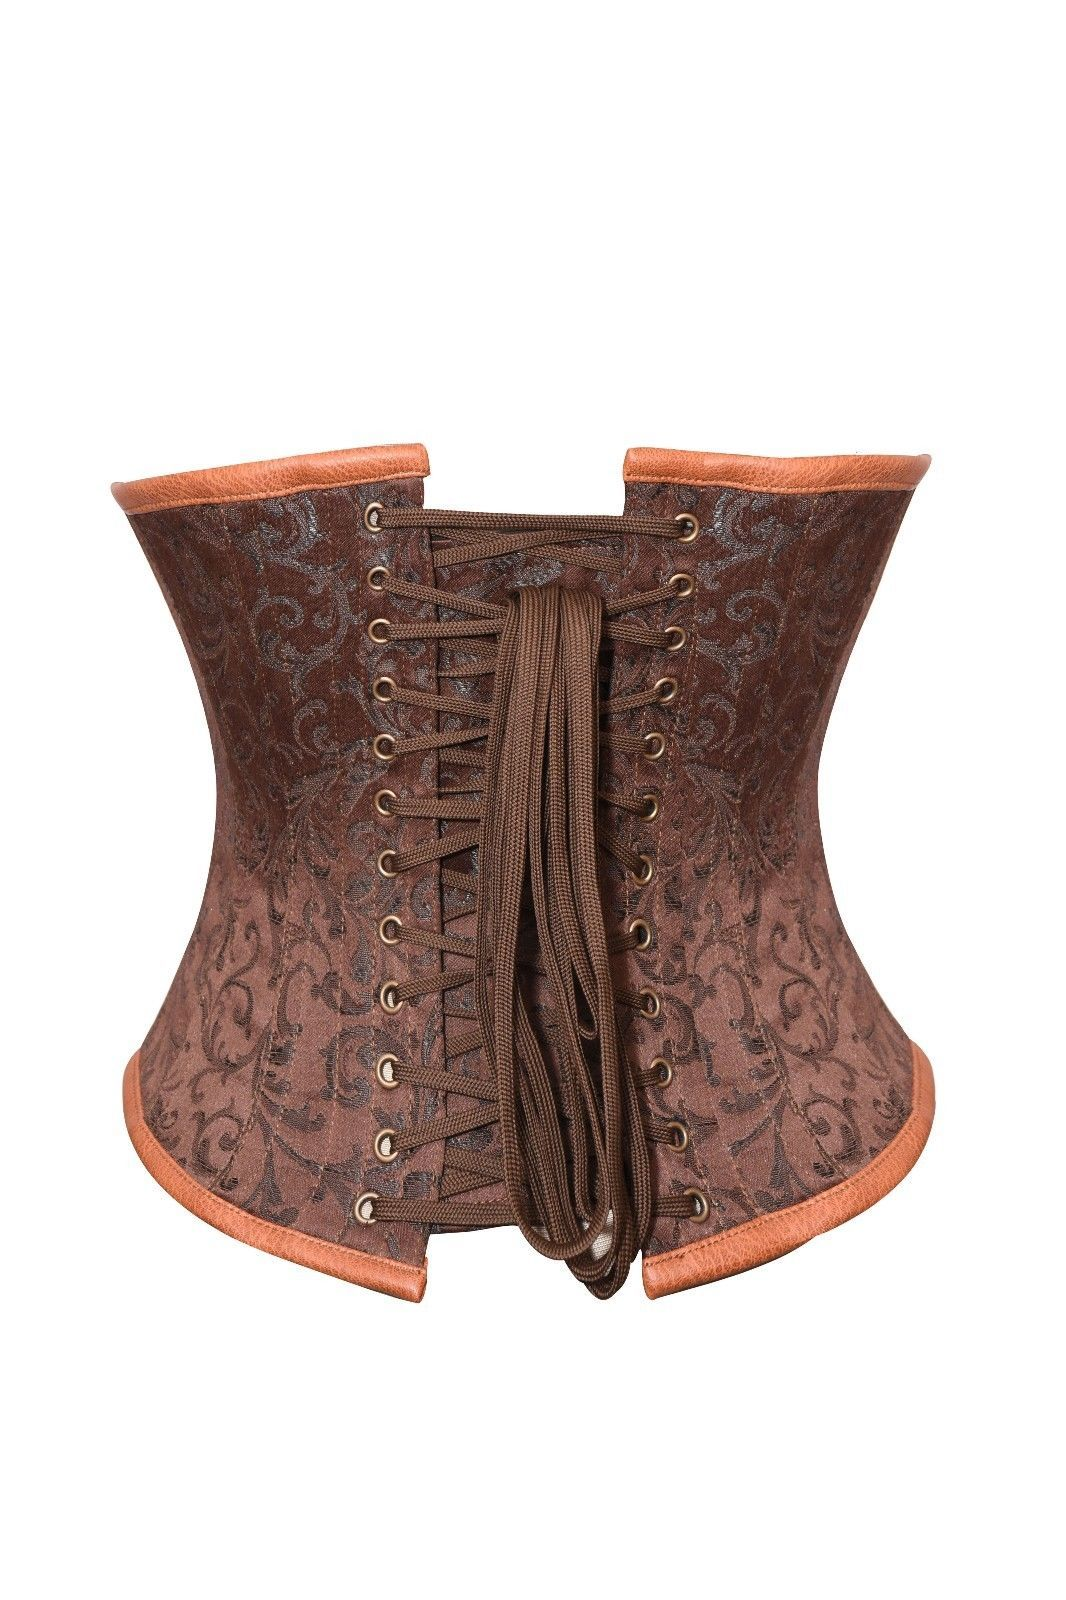 Brown Brocade & Leather Belt Gothic Steampunk Bustier Underbust PLUS SIZE Corset